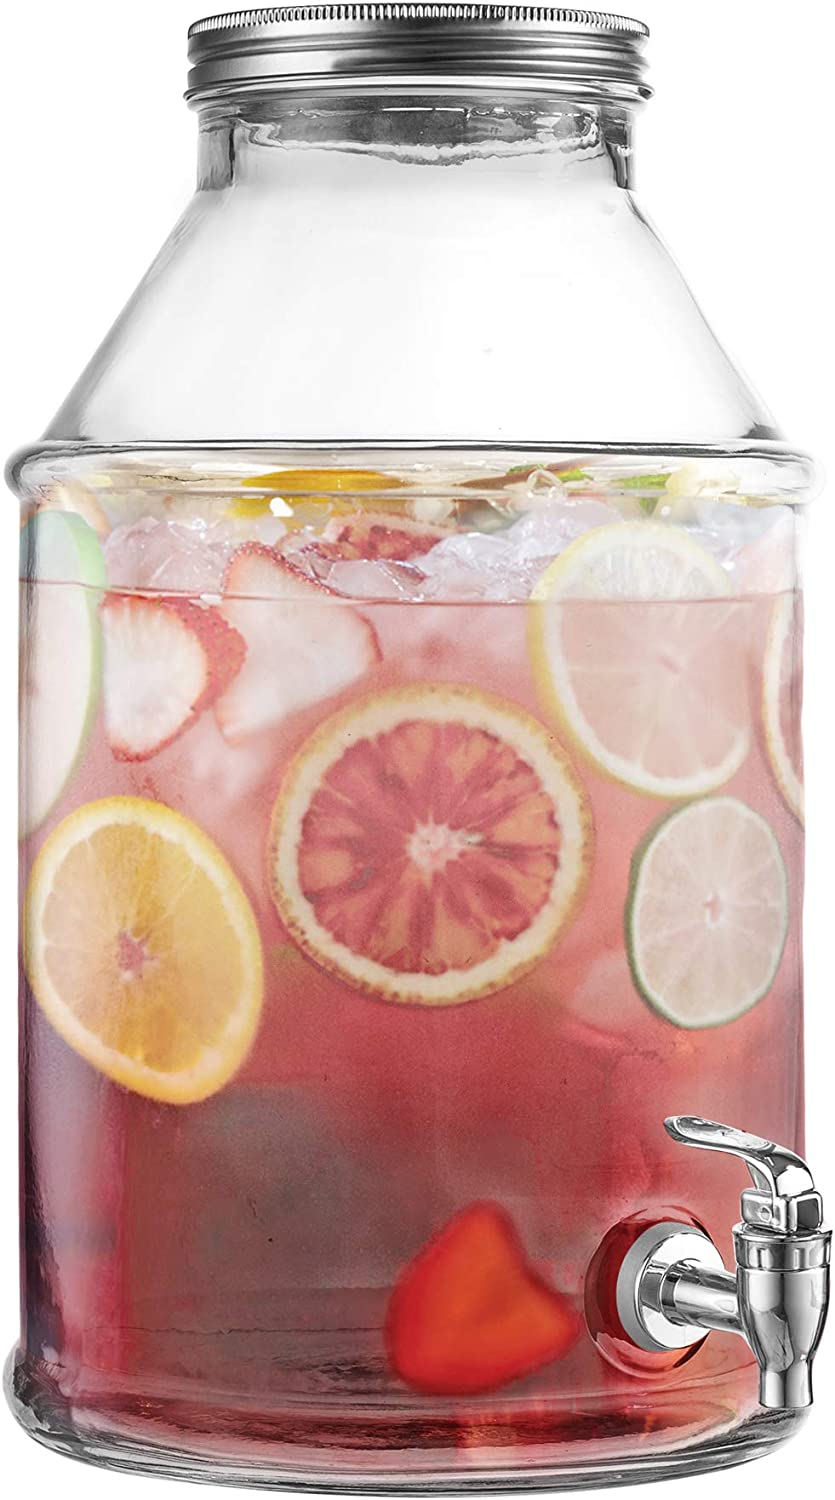 Style Setter 210455-GB Beverage Cold Drink Dispenser w 1.7-Gallon Capacity Glass Jug, Leak-Proof Acrylic Spigot in Gorgeous Gift Box for Parties, 1.7 Gallon, Maxwell